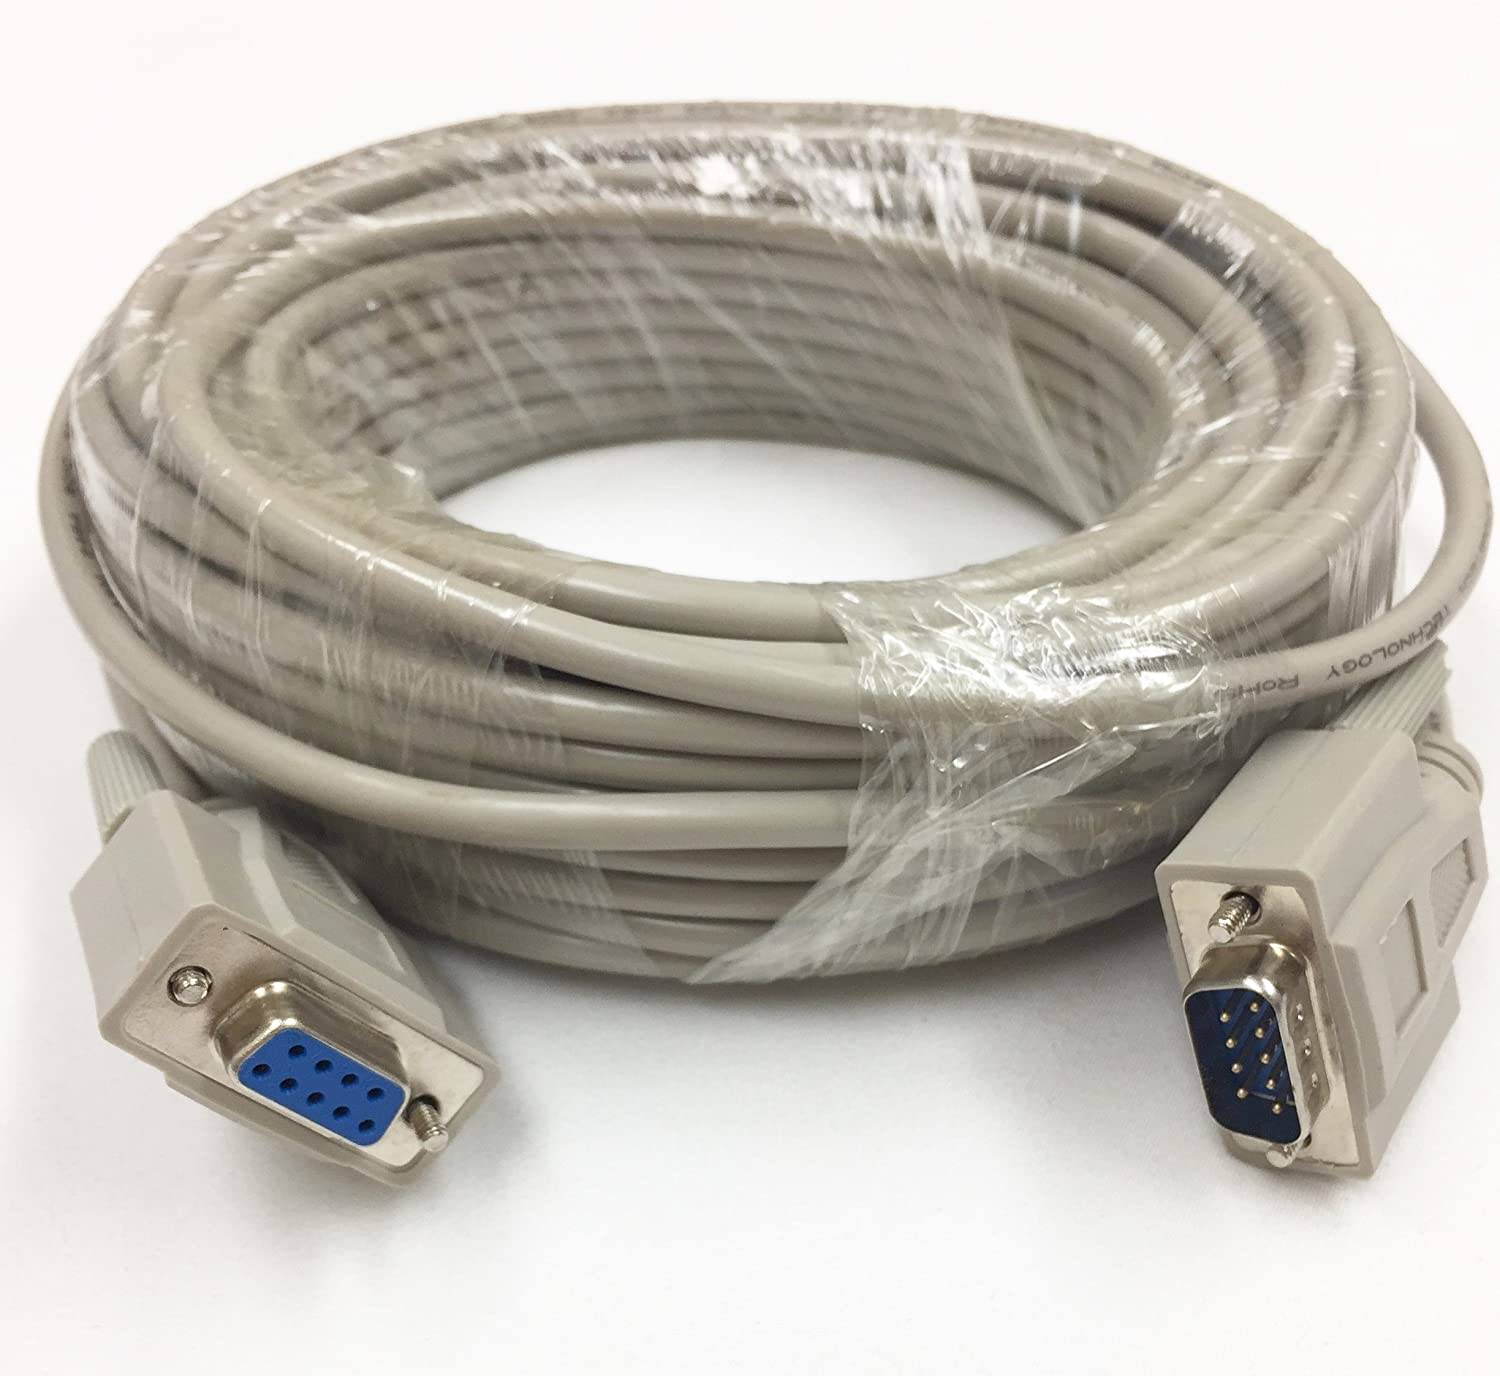 50 Foot Db9 Male To Female Extension Rs232 Serial Cable Home Modem Cables Ul Computers Accessories